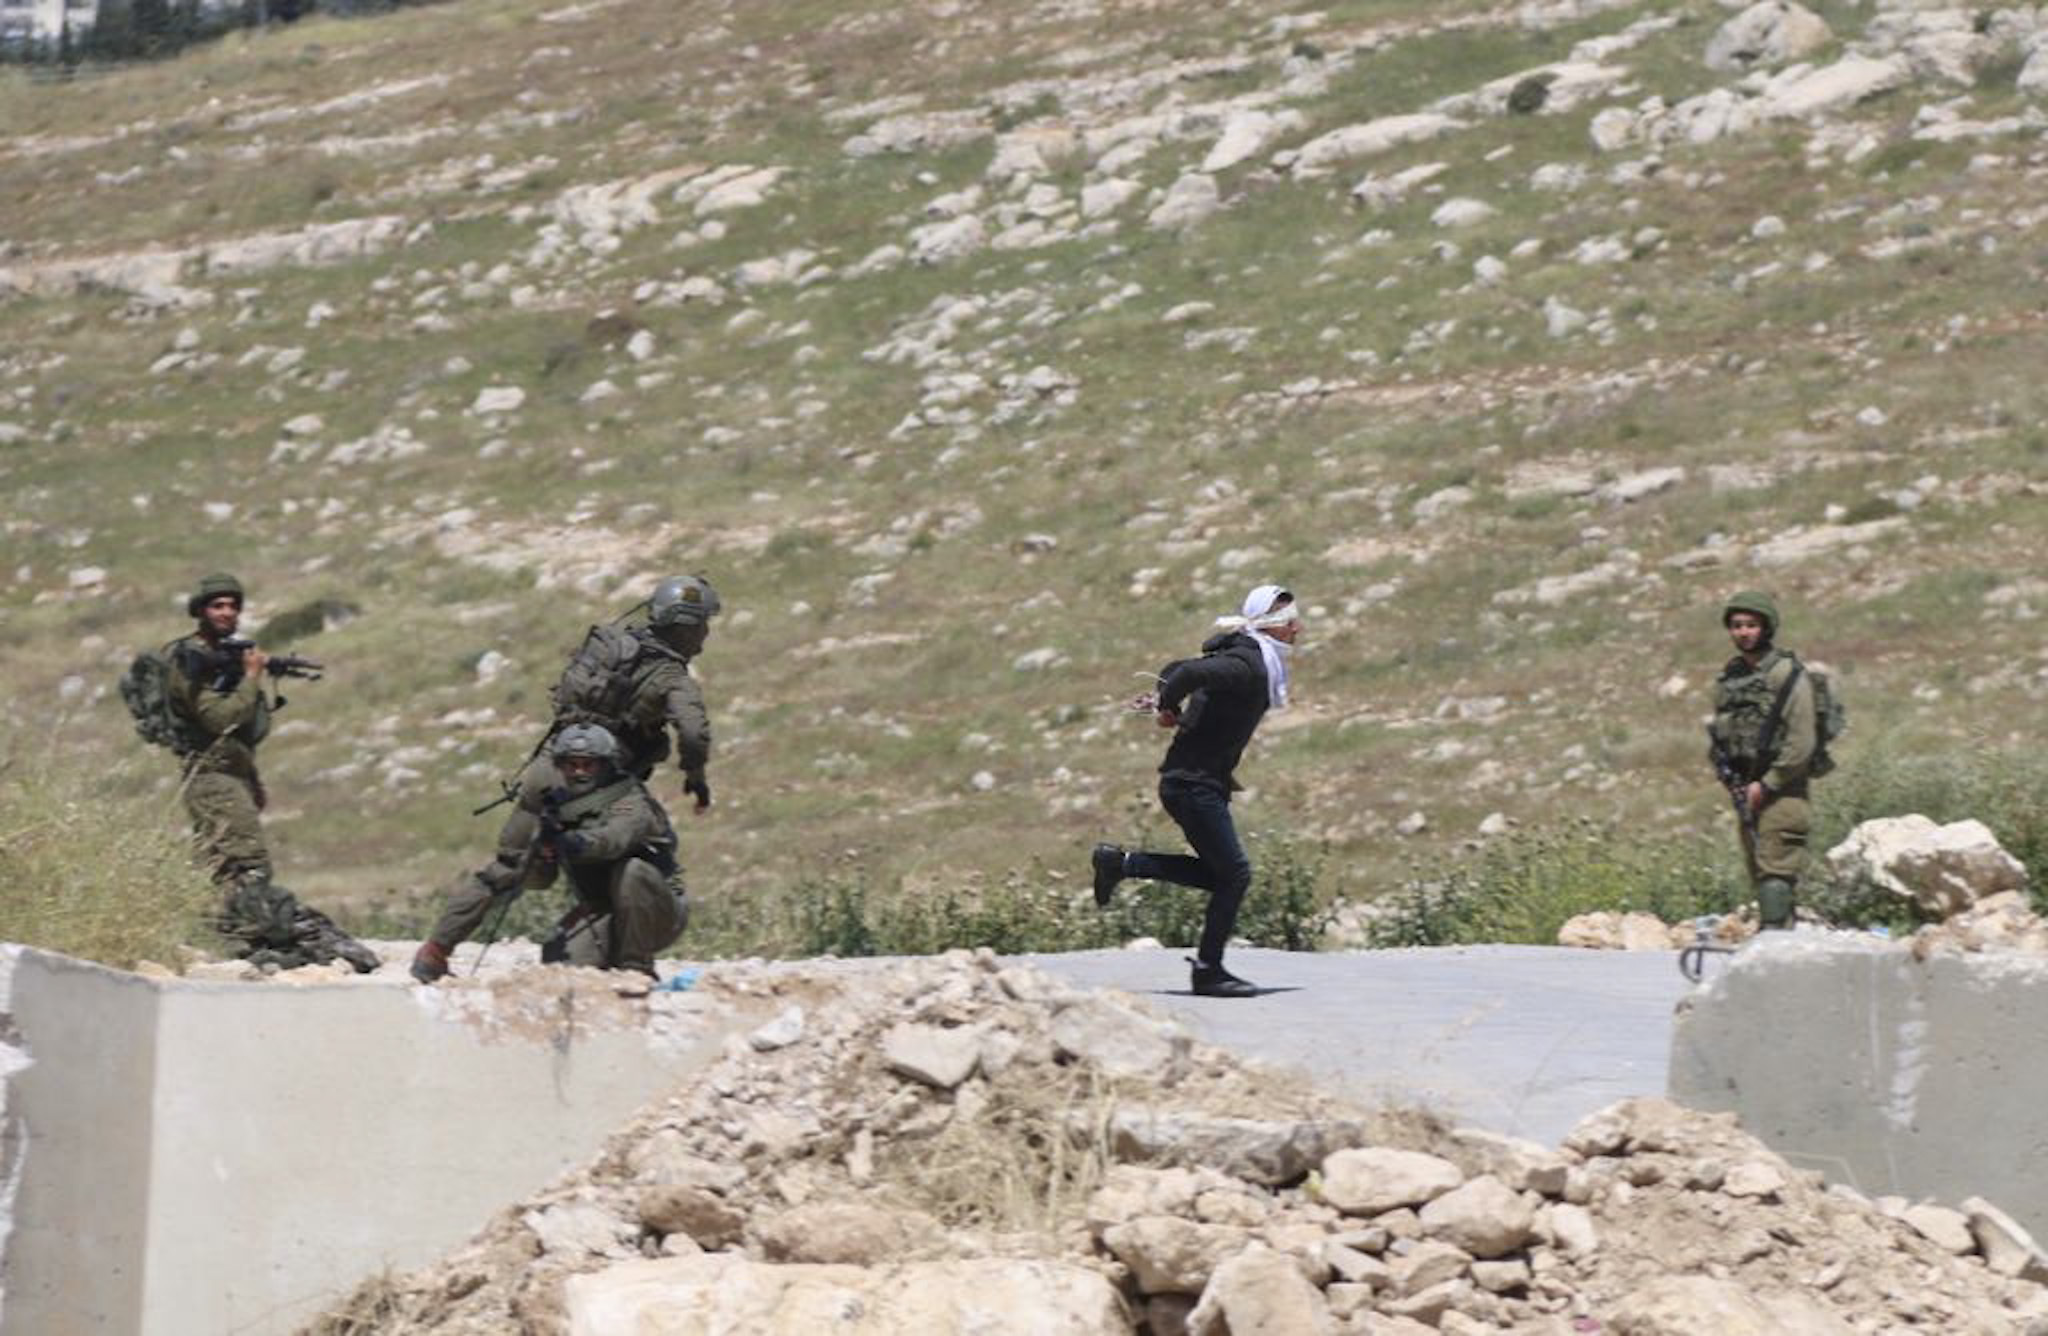 Handcuffed and blindfolded Osama Hajahjeh, 16, runs away from Israeli soldiers near the village of Tekoa, West Bank, Apri 18, 2019.